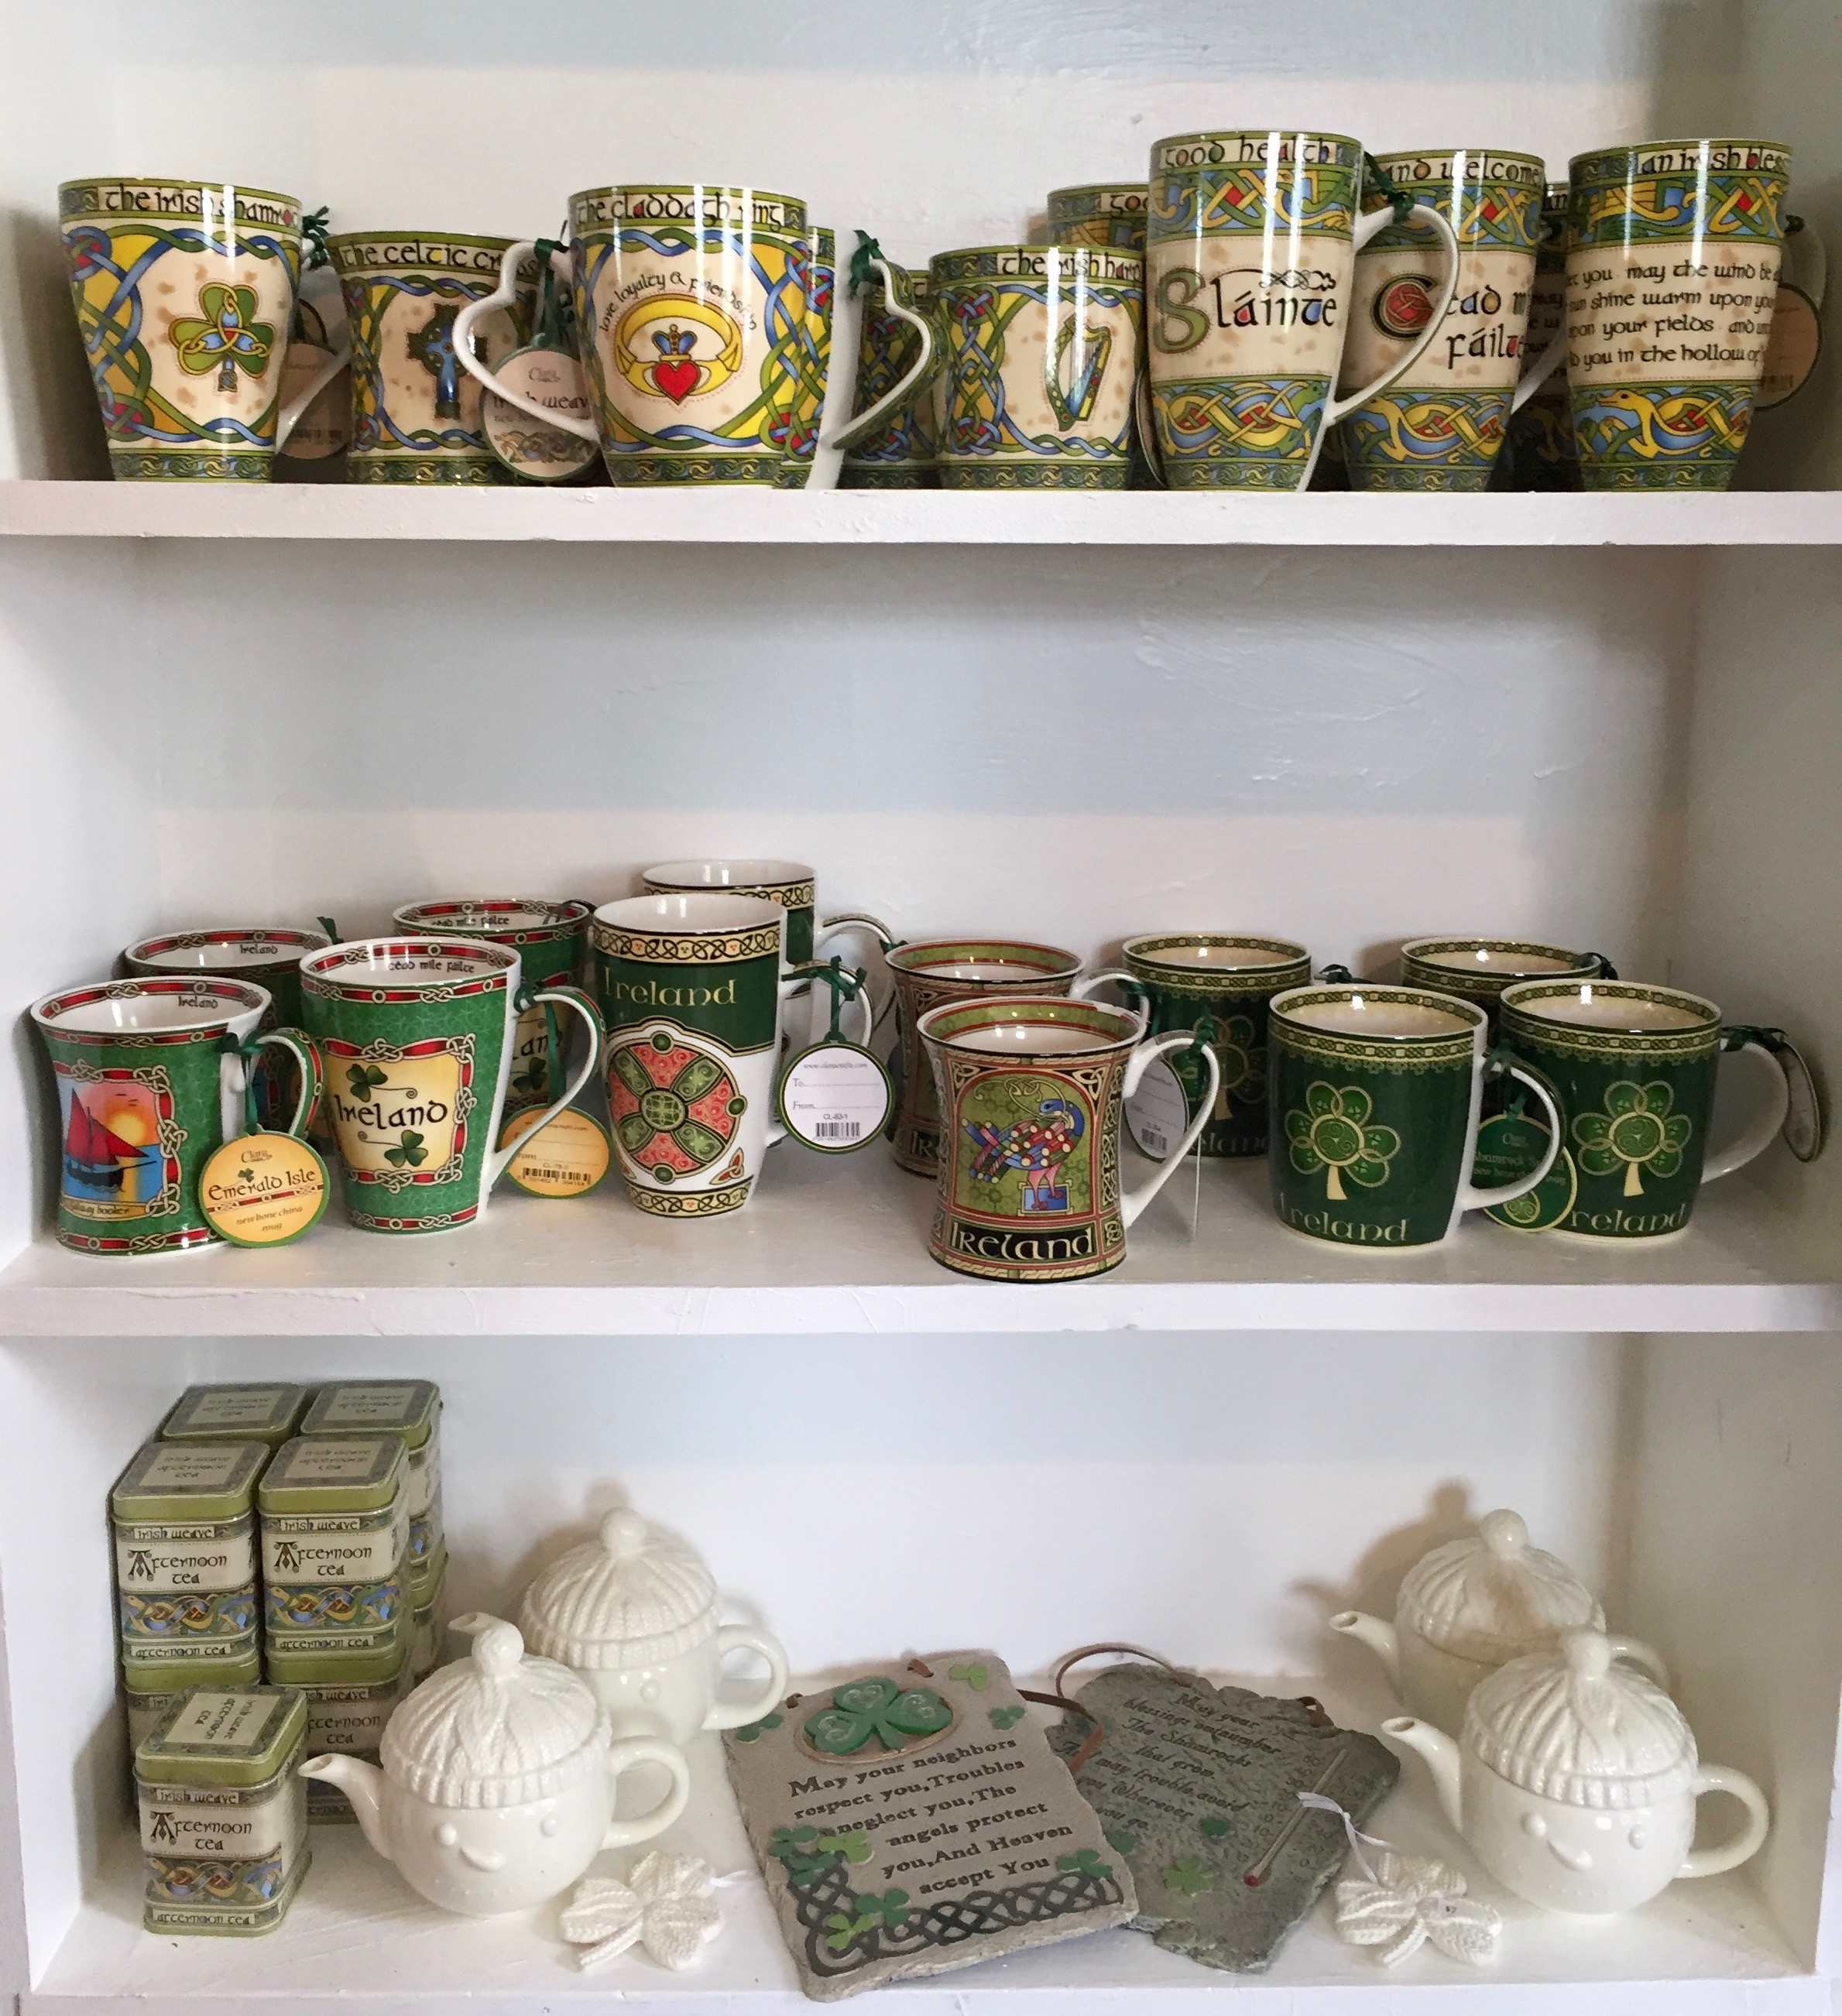 Mugs, teacups and Irish gifts at the Irish Tea Shop in East Durham, NY | BrooklynDoubleWide.com